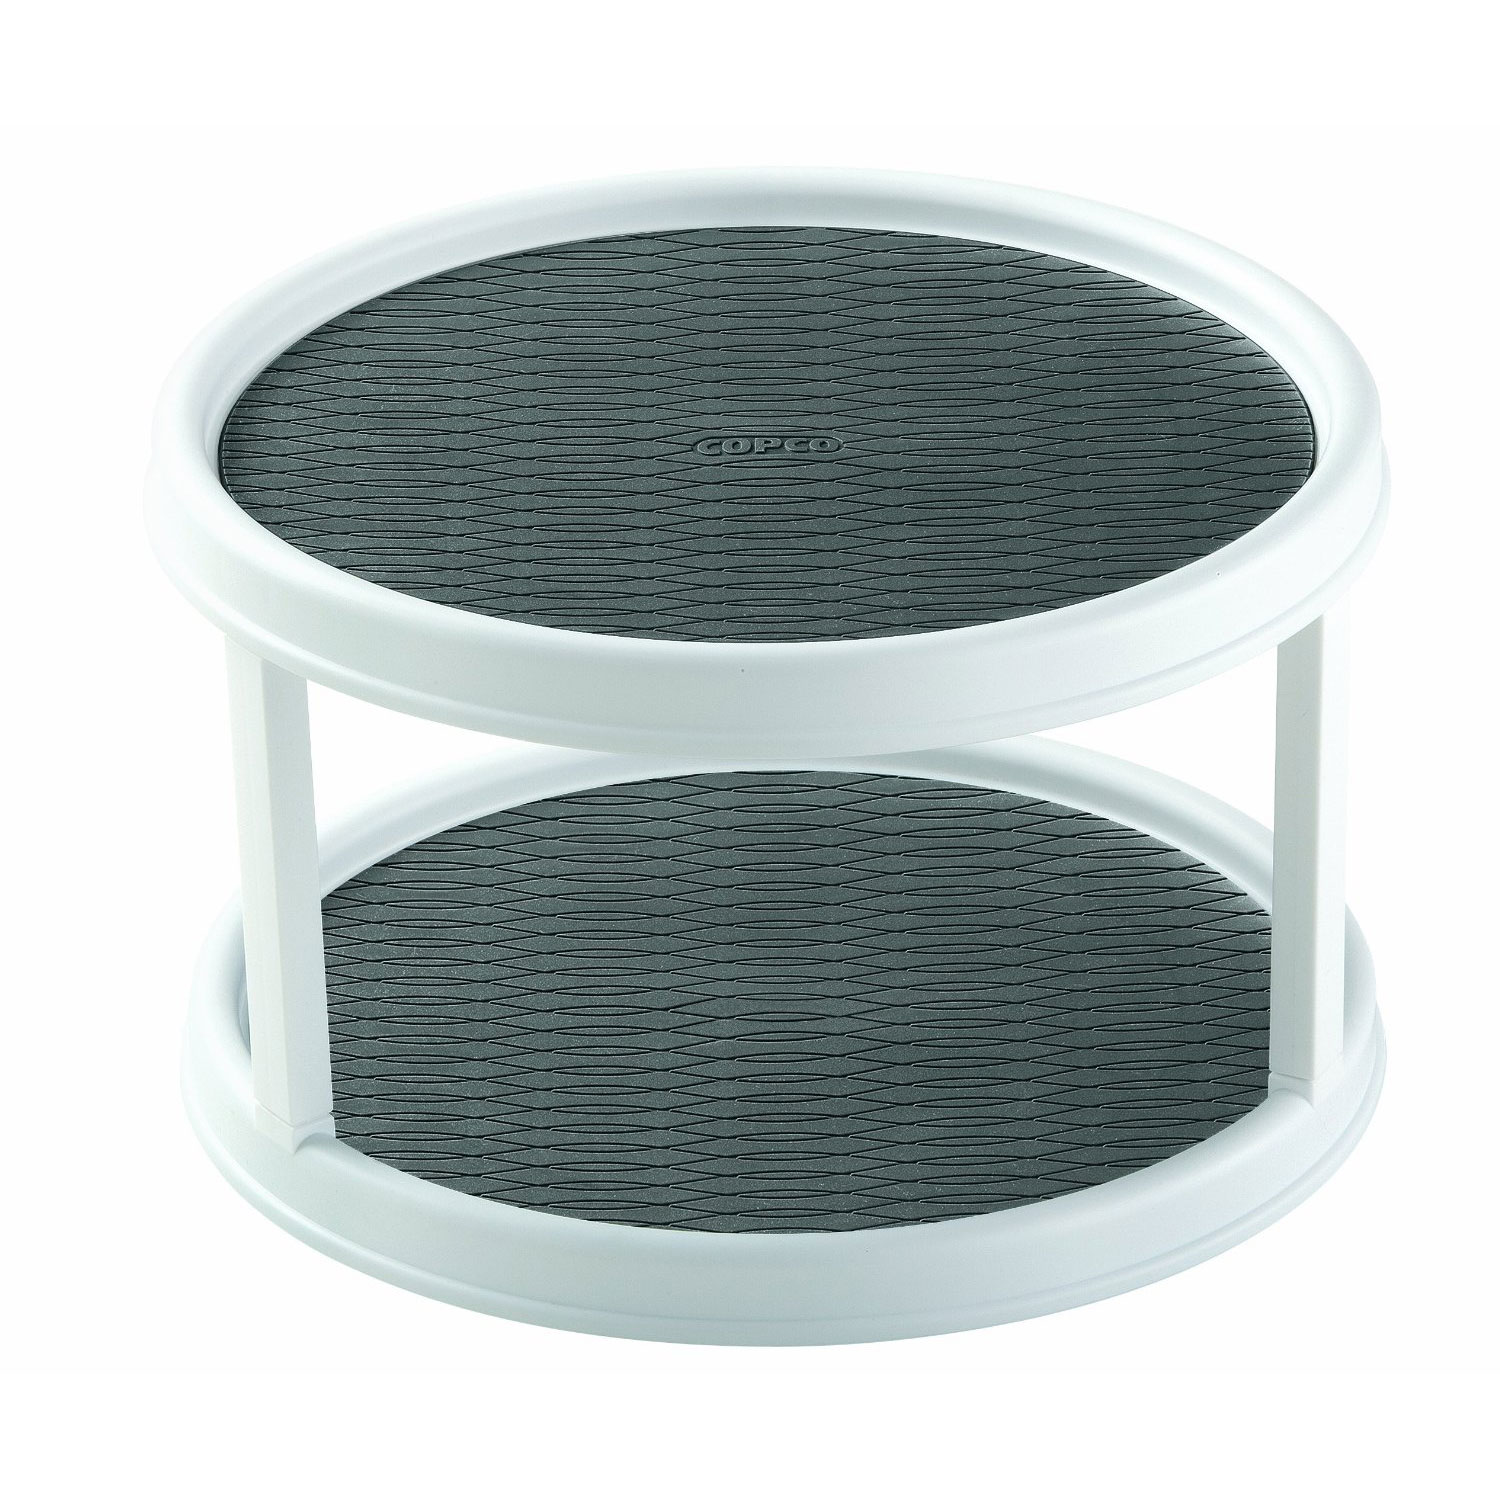 043909701876 Upc Copco Two Tier Lazy Susan Turntable